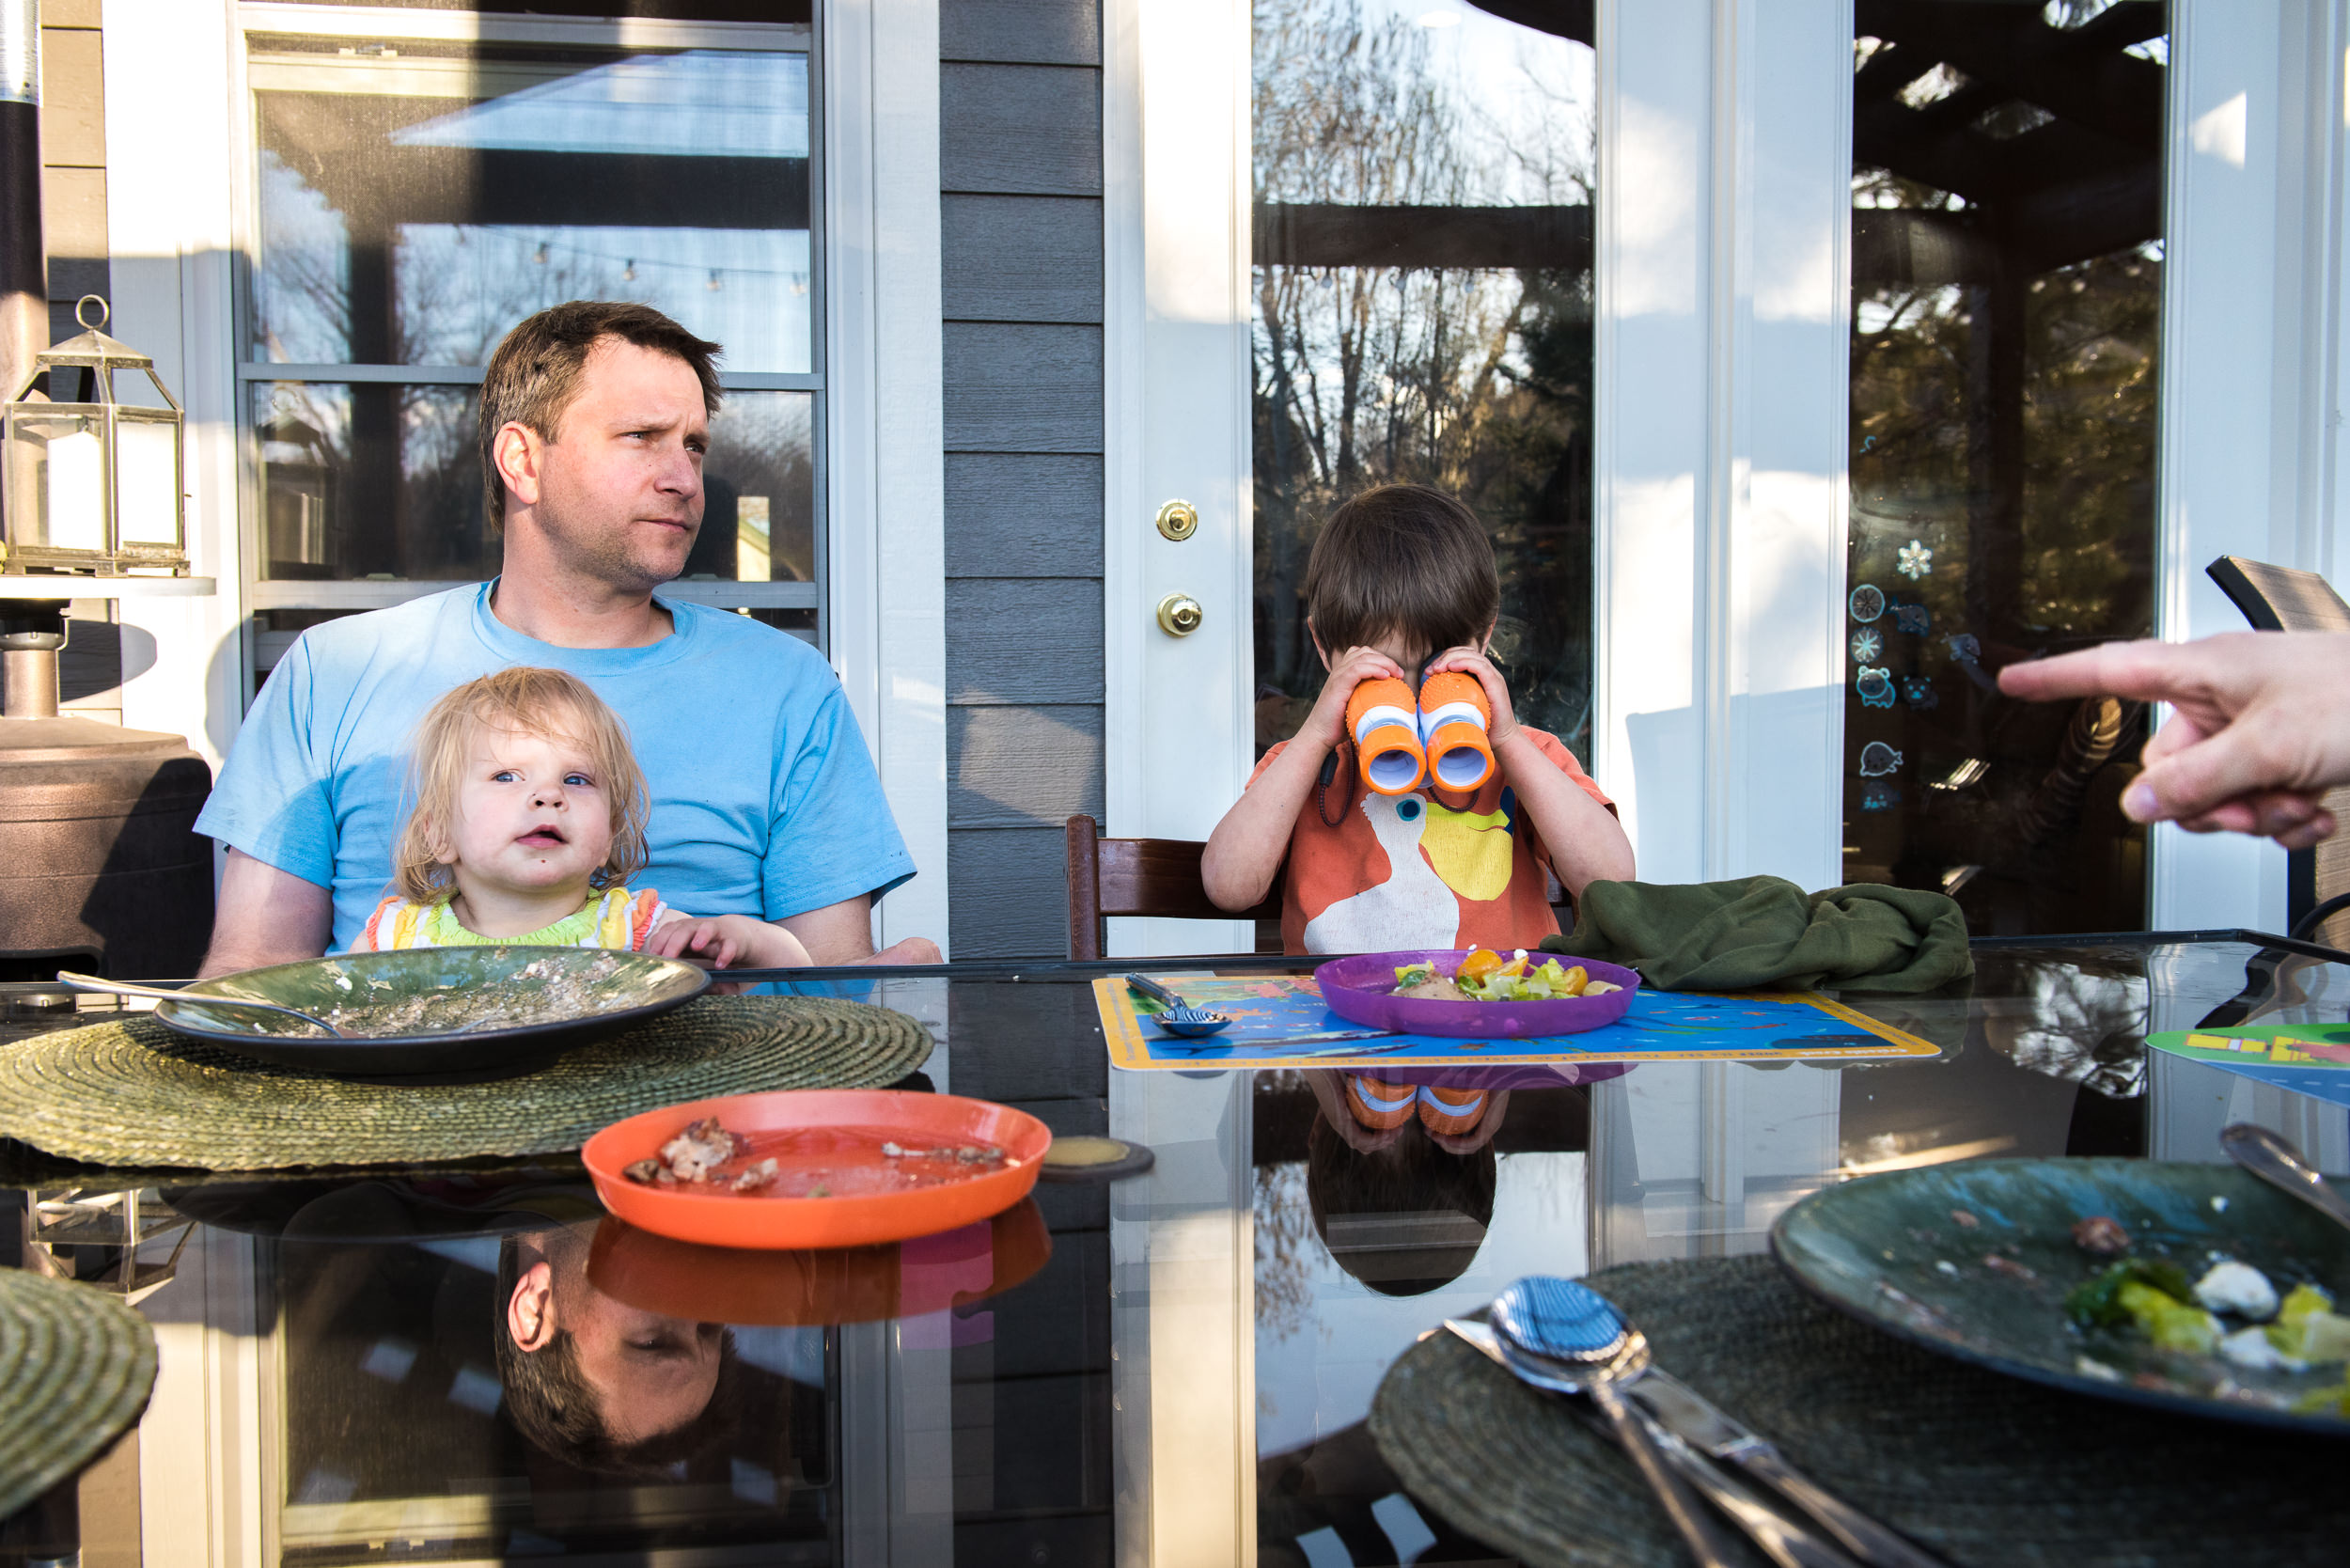 Documentary Family Photography in Denver, Colorado - dinner-time with binoculars